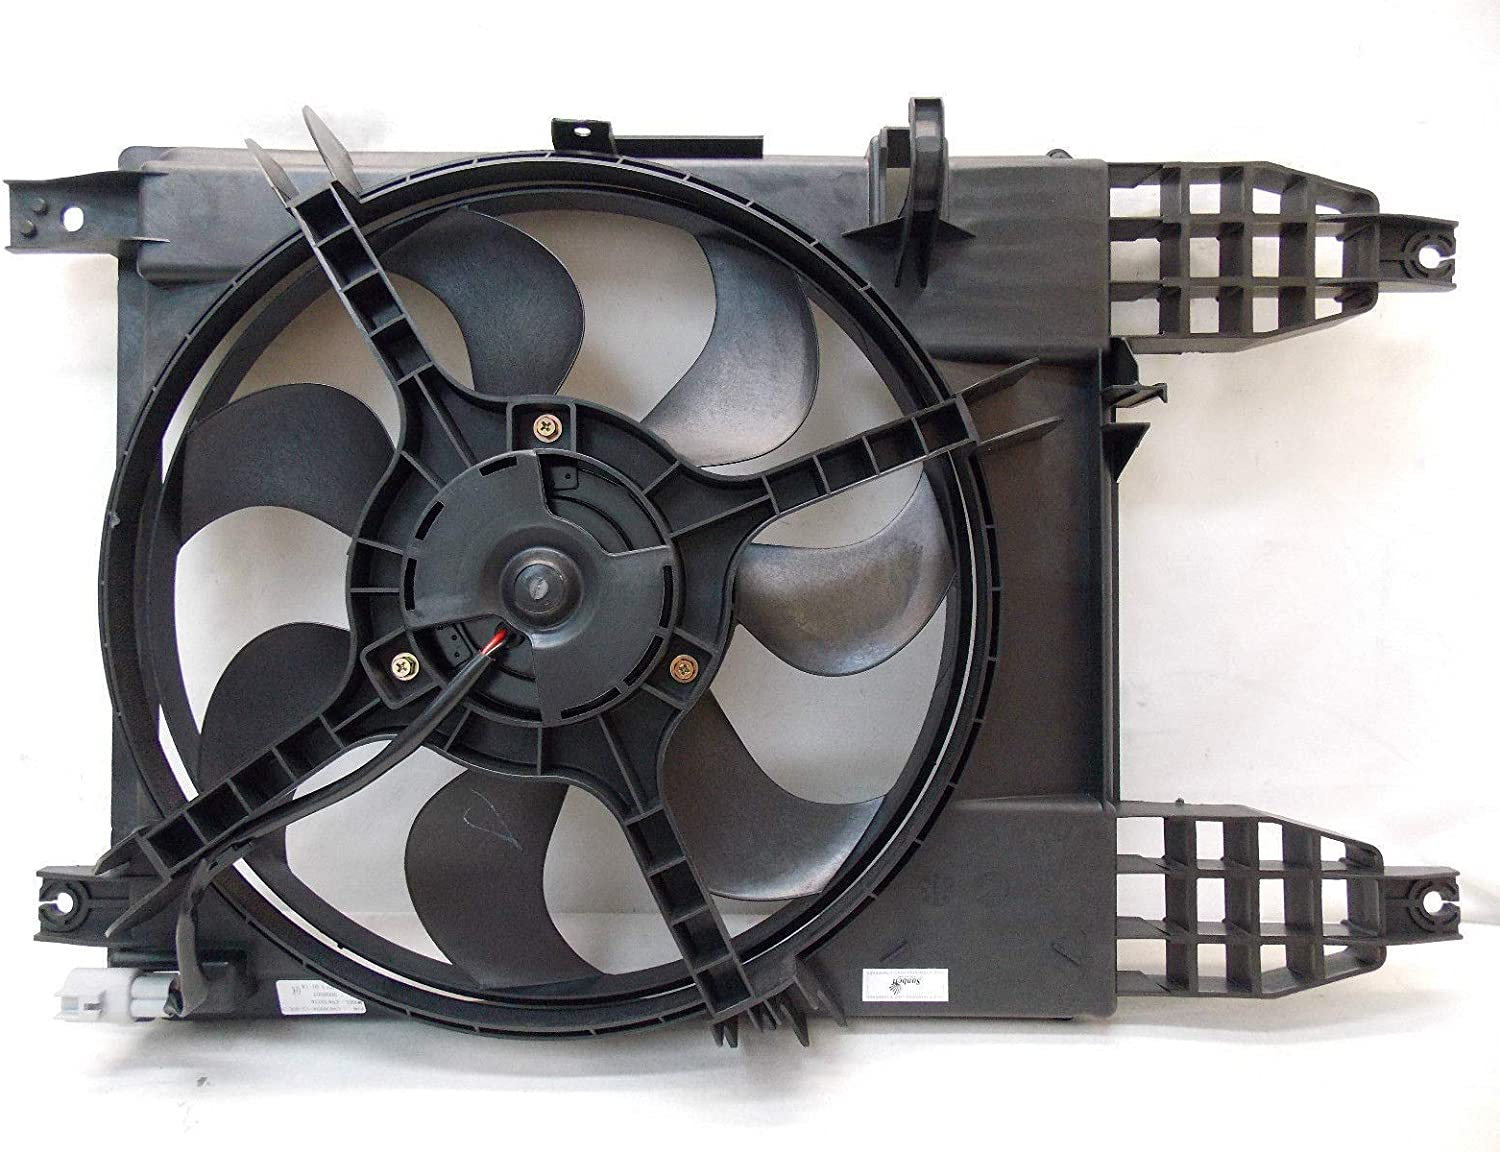 Sunbelt Radiator And Condenser Fan For Toyota Sienna TO3115135 Drop in Fitment